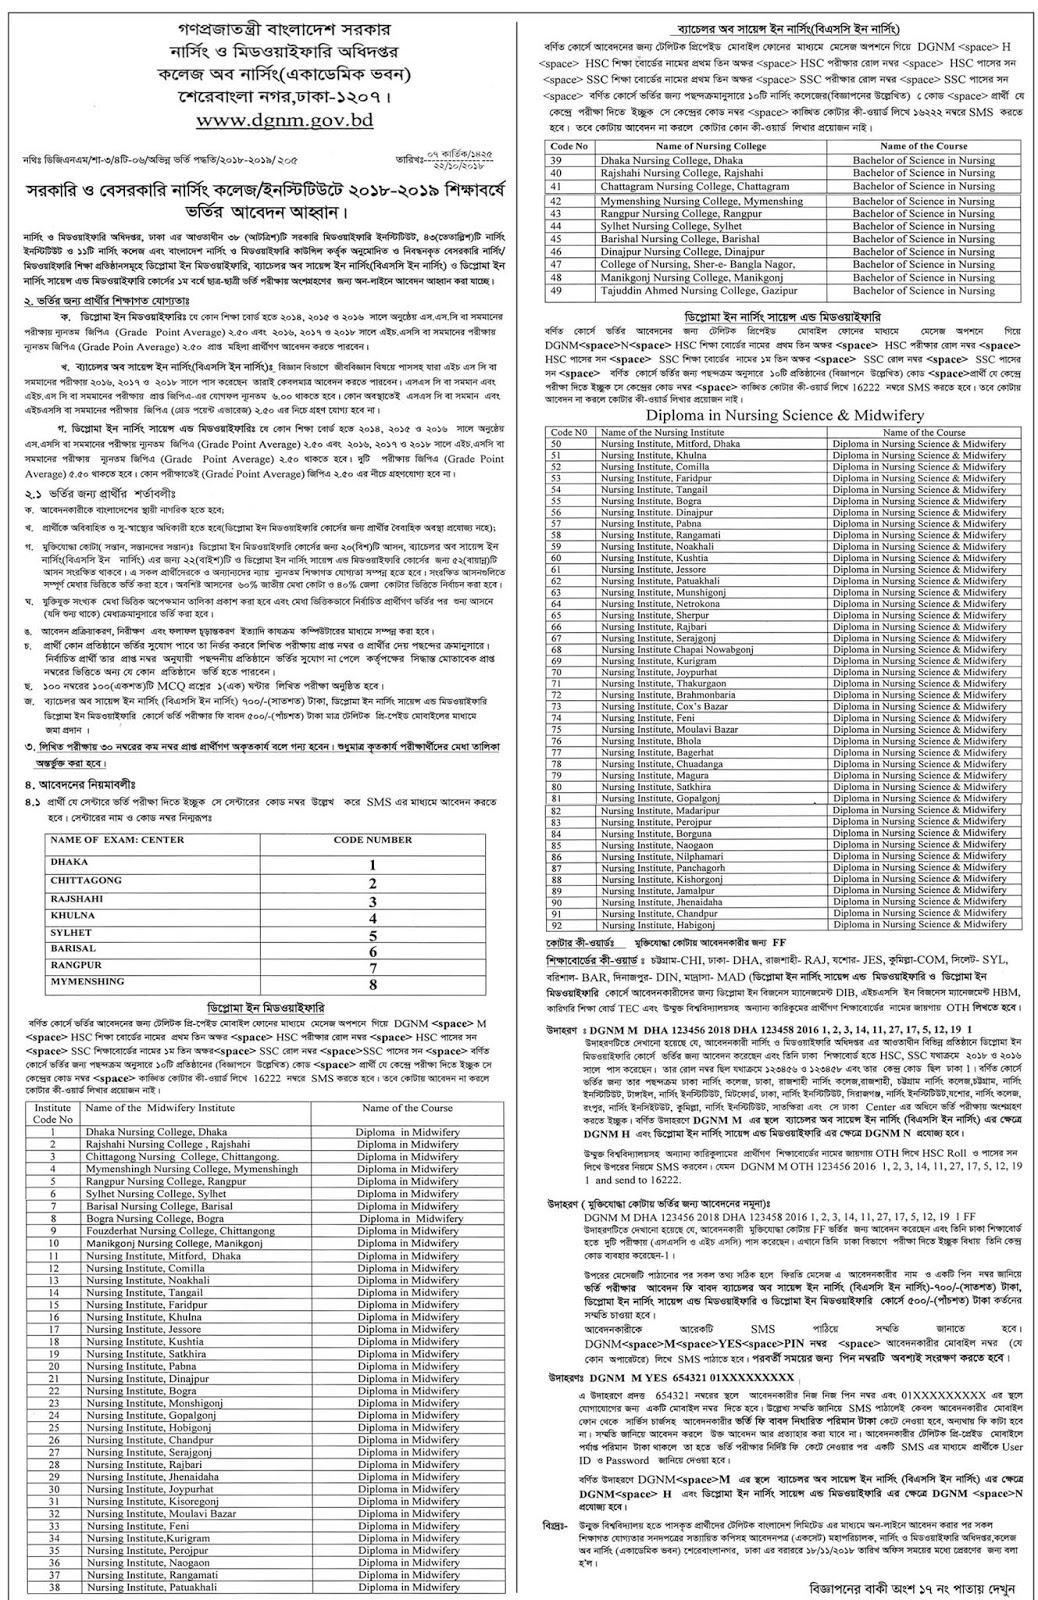 Bangladesh Nursing and Midwifery Council B.Sc in Diploma in Nursing Science and Midwifery Admission Test Circular 2018-2019